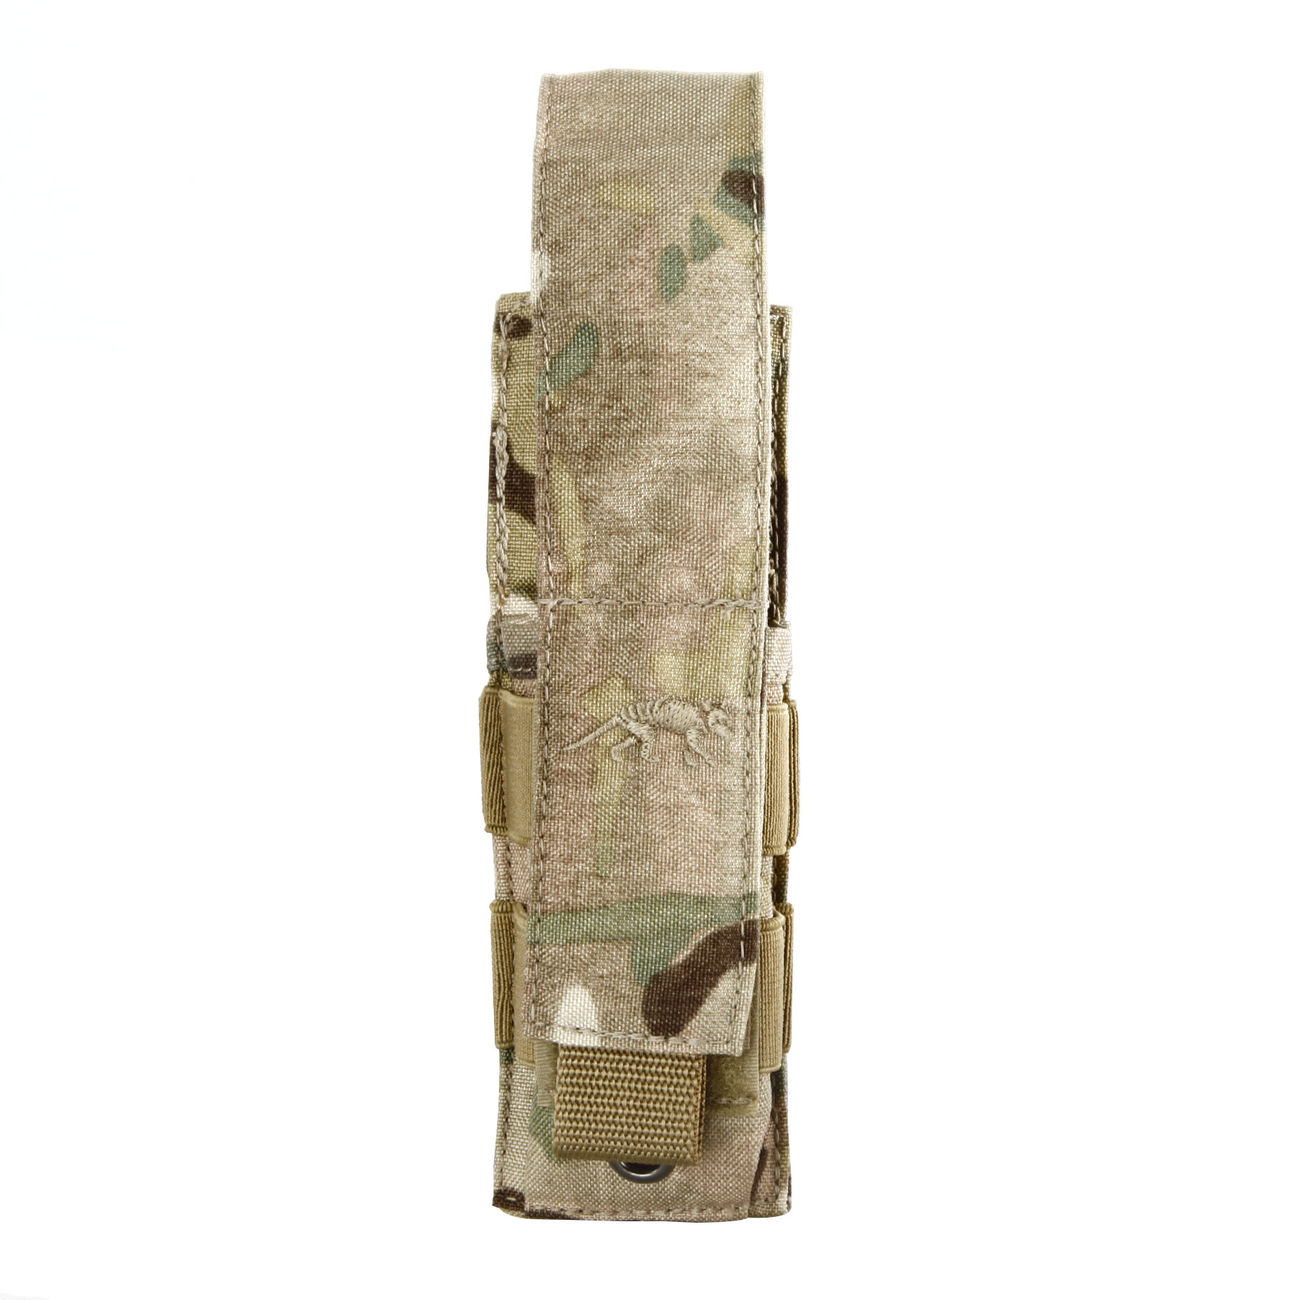 TT Magazintasche SGL Mag Pouch MP7 (40er) Multicam 2